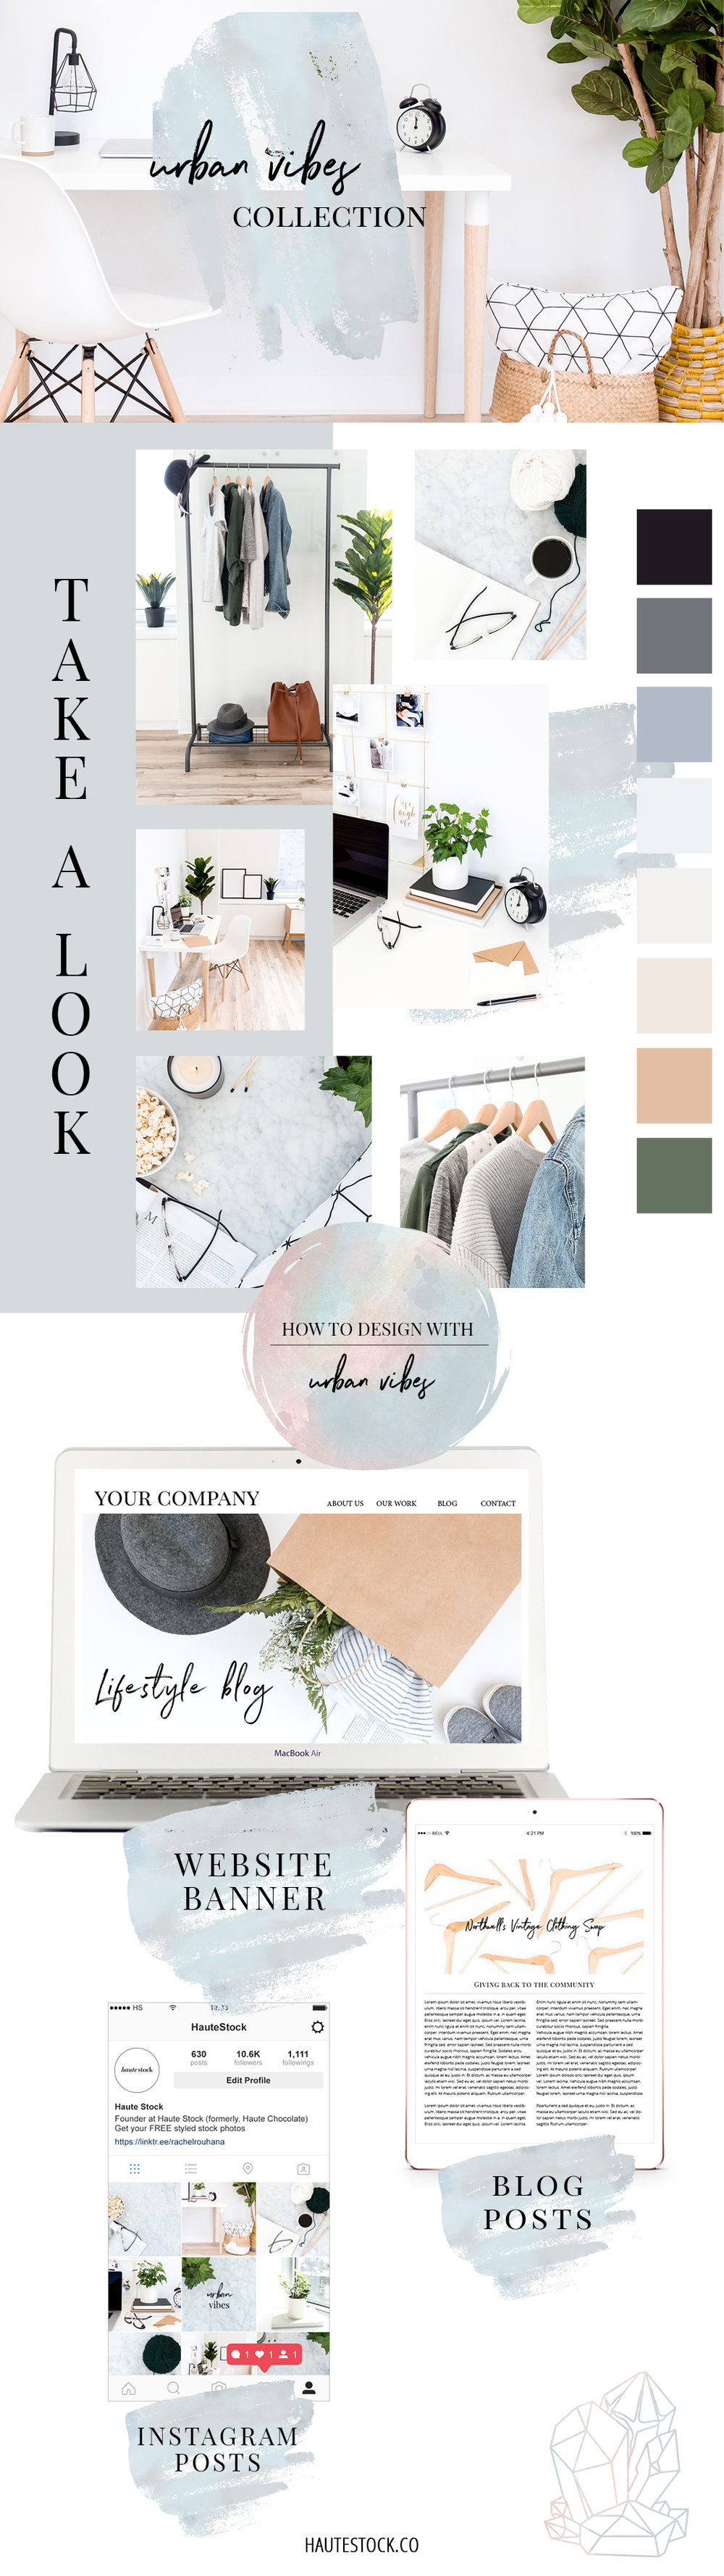 Urban Vibes Collection - A modern, minimal styled stock collection that features lifestyle images and flatlays perfect for fashion stylists, home organizers and bloggers. Click to see a full preview of the collection!